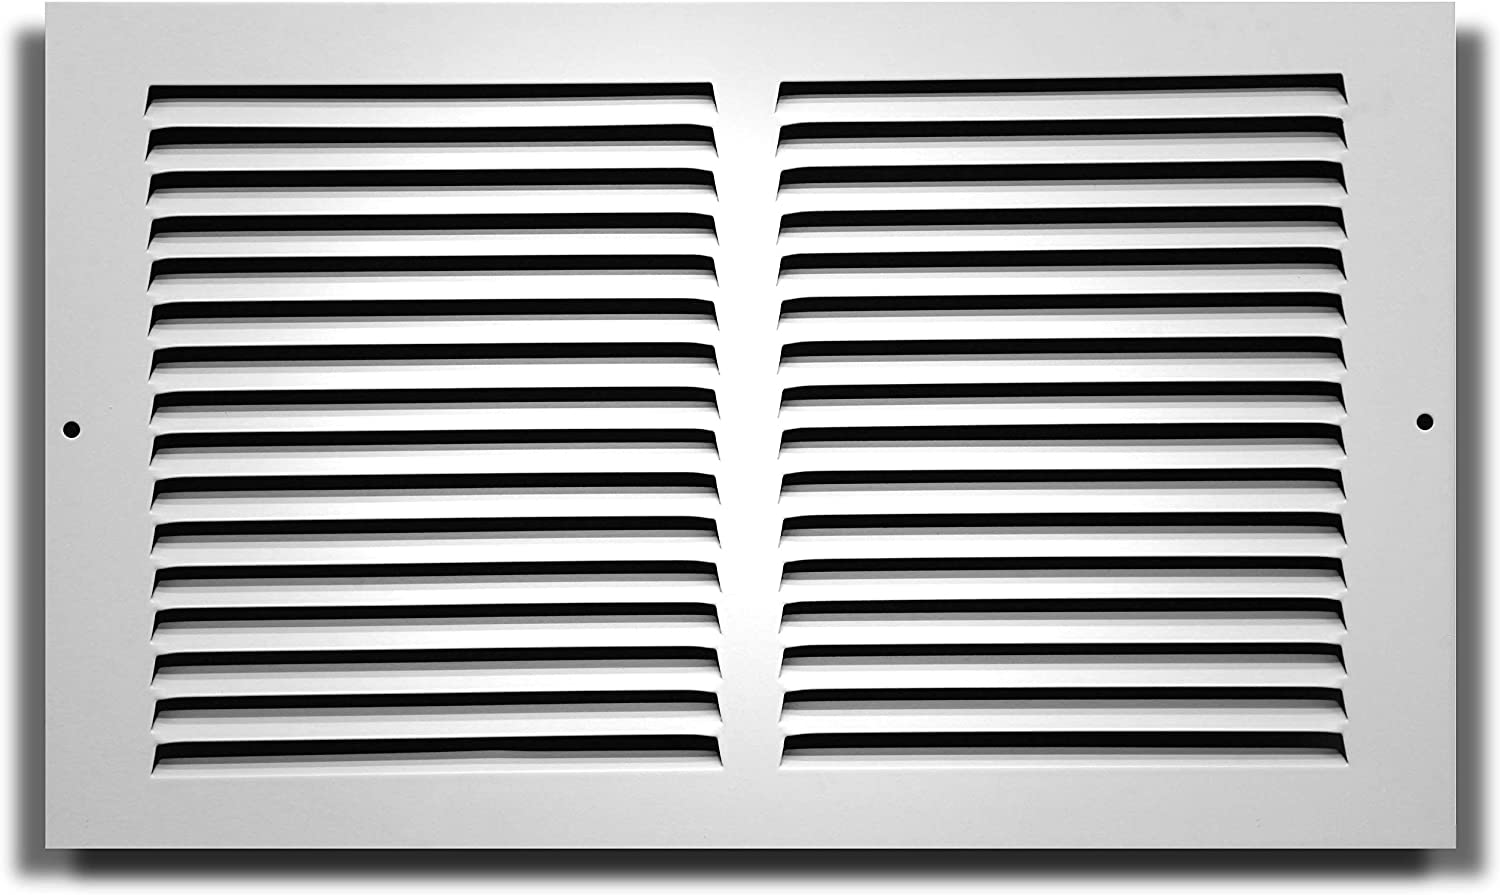 """30"""" X 6"""" Baseboard Return Air Grille - HVAC Vent Duct Cover - 7/8"""" Margin Turnback for Flush Fit with Baseboard Work - White"""